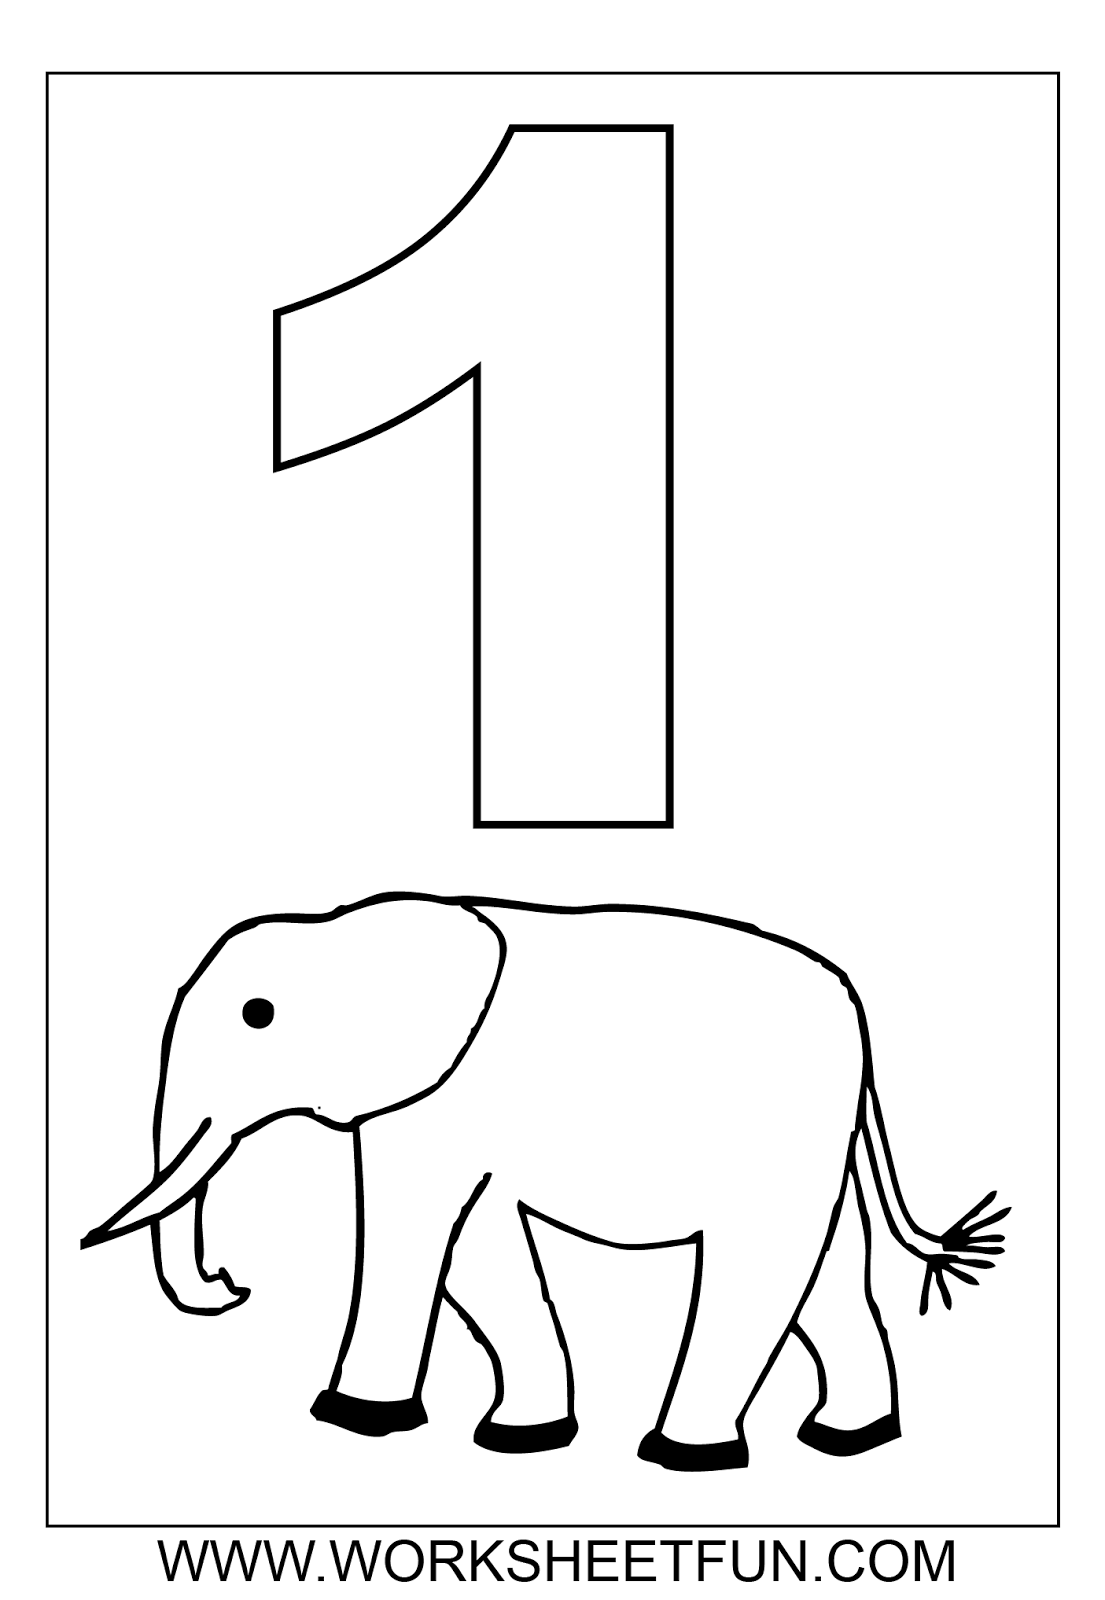 14 Best Images Of Counting Worksheets 16 20